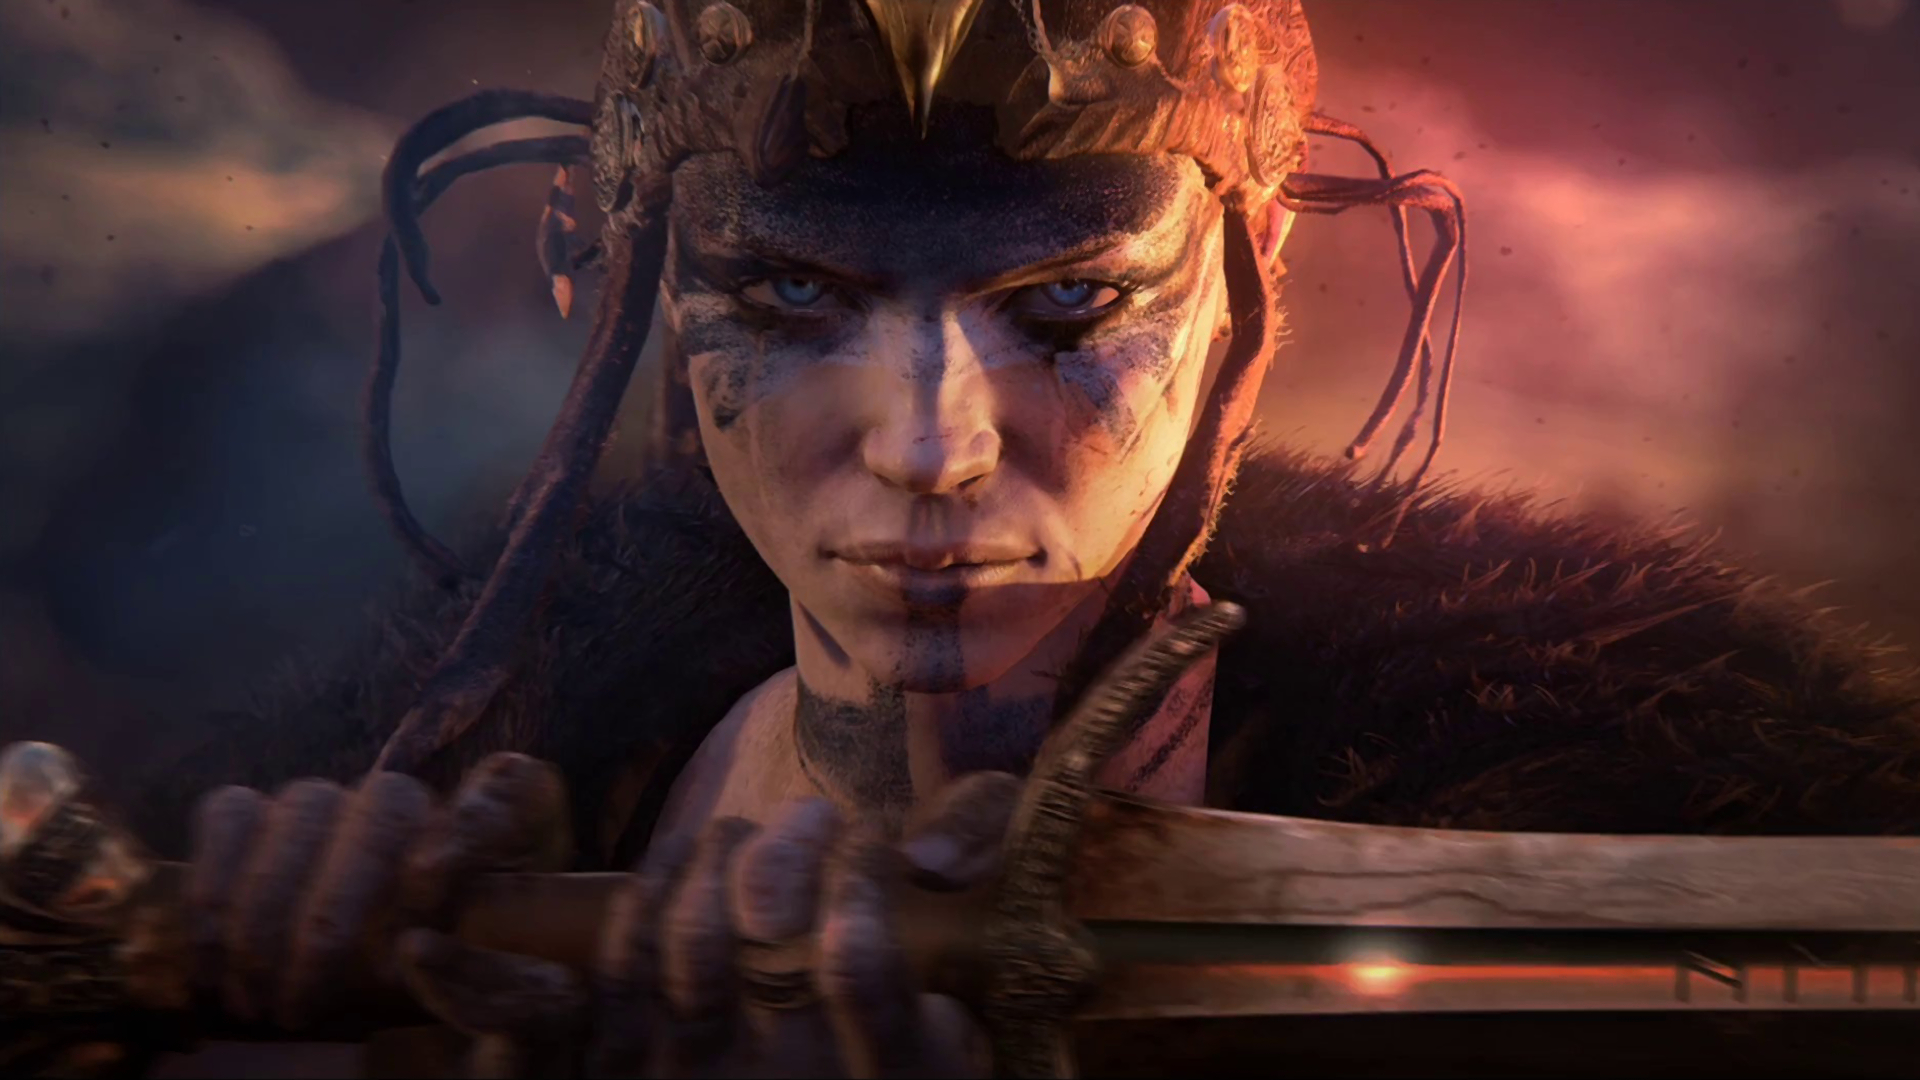 Hellblade Hd Wallpaper Background Image 1920x1080 Id 686071 Wallpaper Abyss